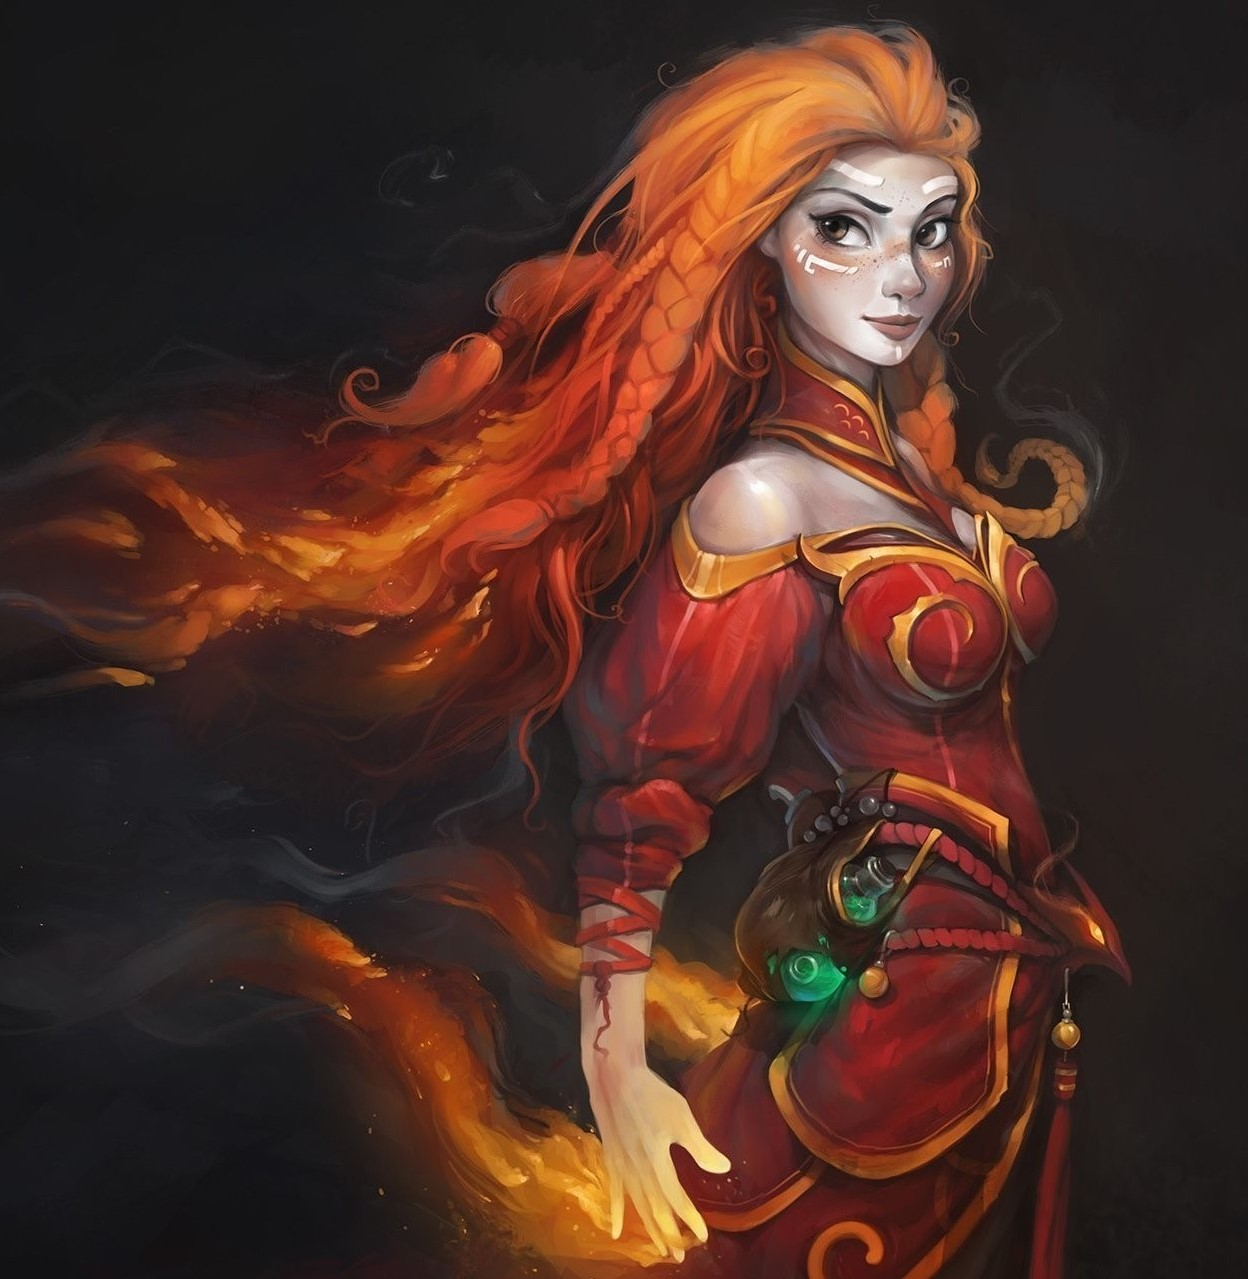 Lina Inverse - who is this History of the hero